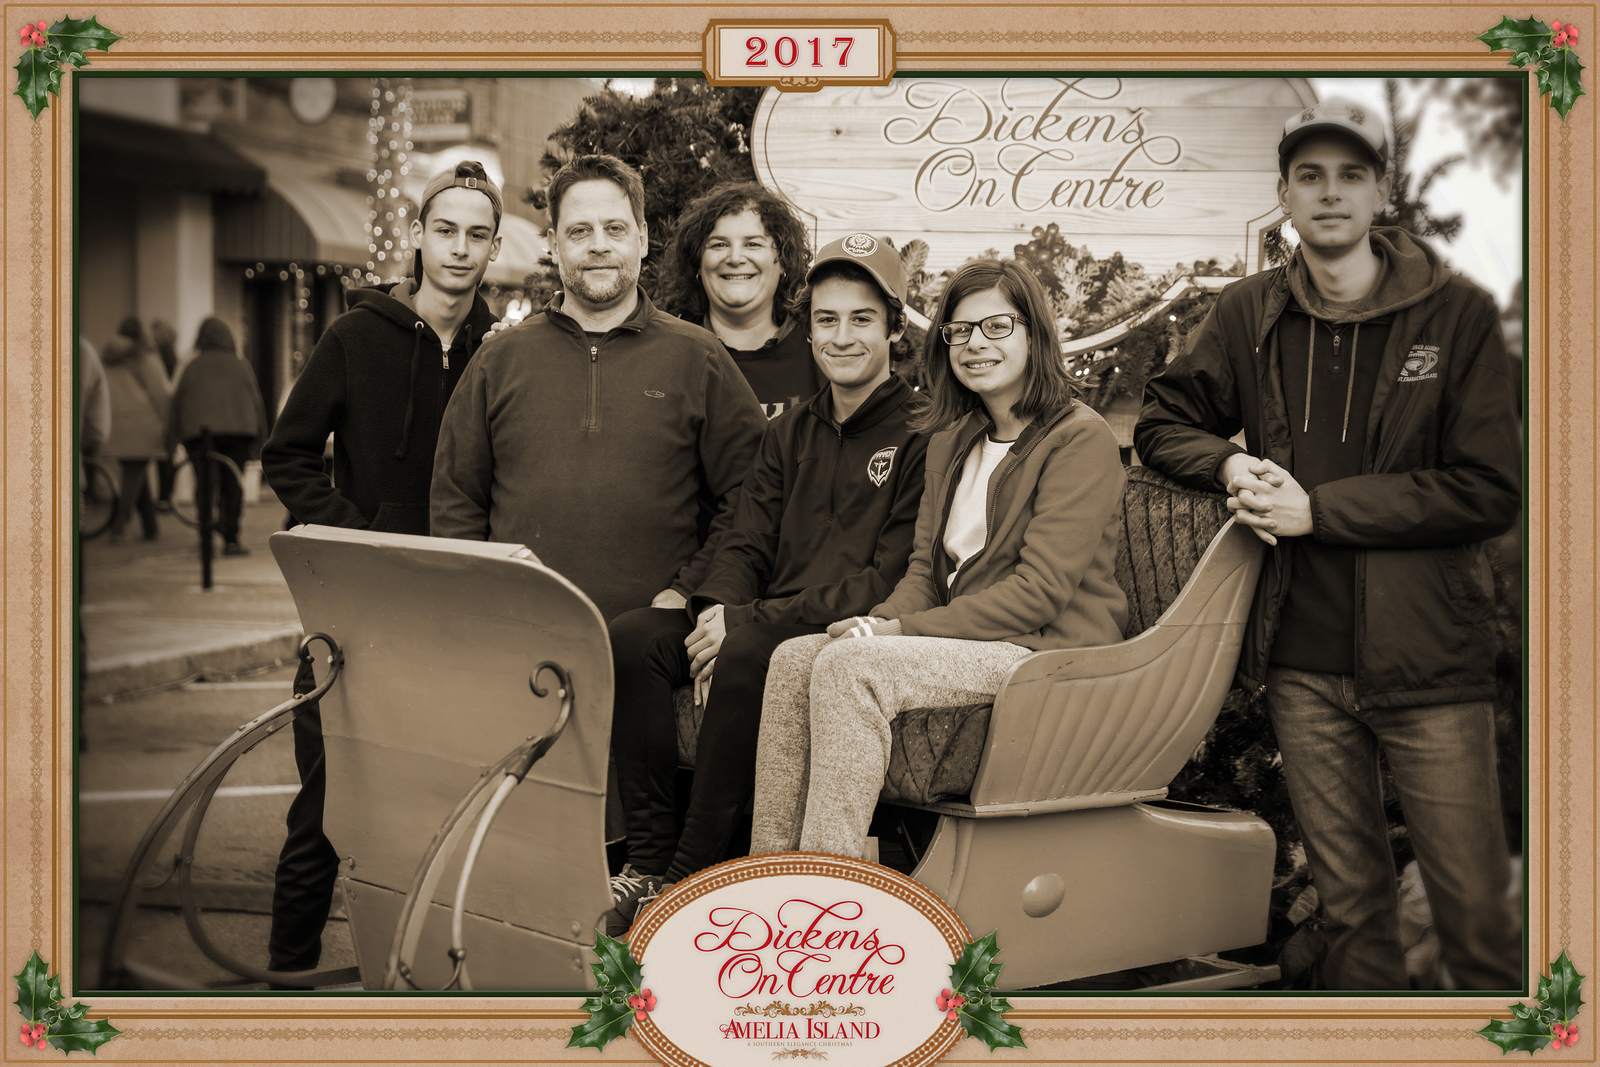 2017 Dickens on Centre - Old Time Photos 159A - Deremer Studios LLC